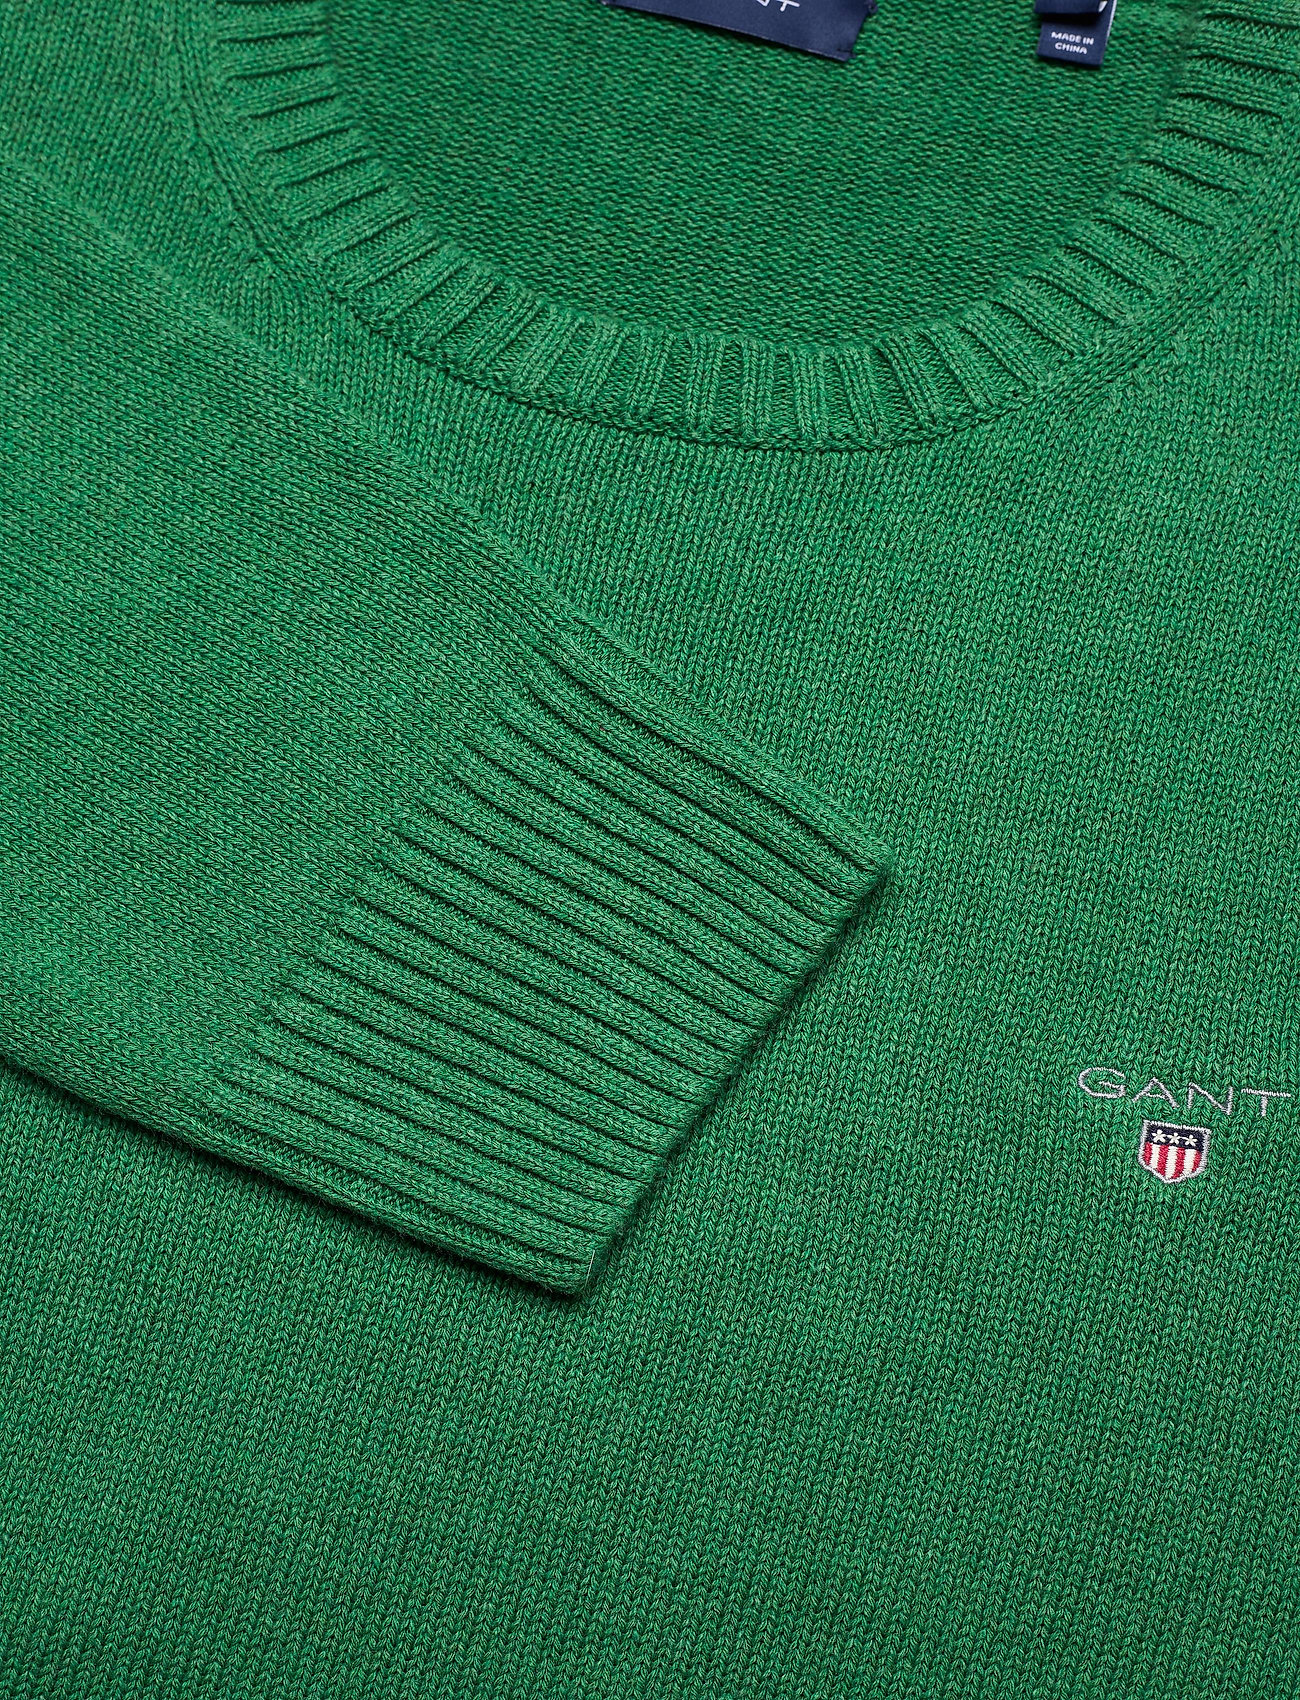 GANT CASUAL COTTON CREW - Strikkevarer KELLY GREEN MEL - Menn Klær